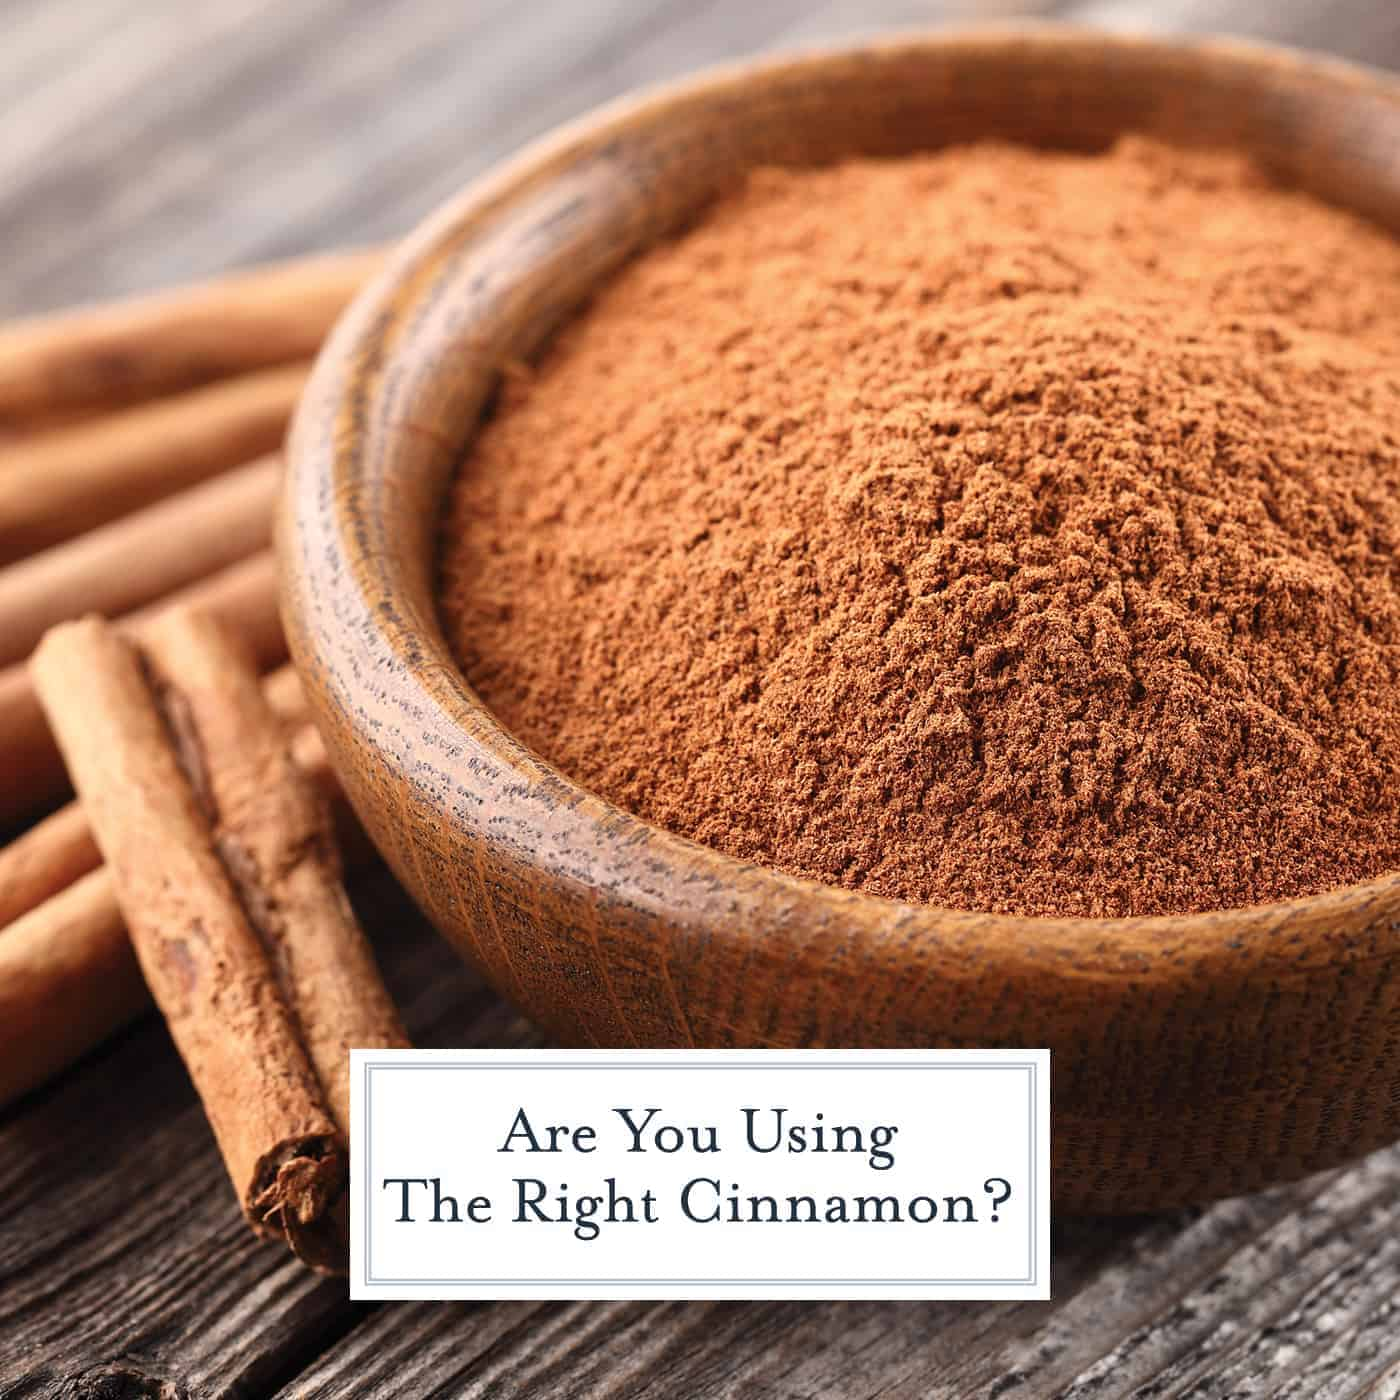 Cinnamon is one of the most commonly used spices, but there are so many varieties. See if you are using the one with best flavor and maximum health benefits! #cinnamon www.savoryexperiments.com